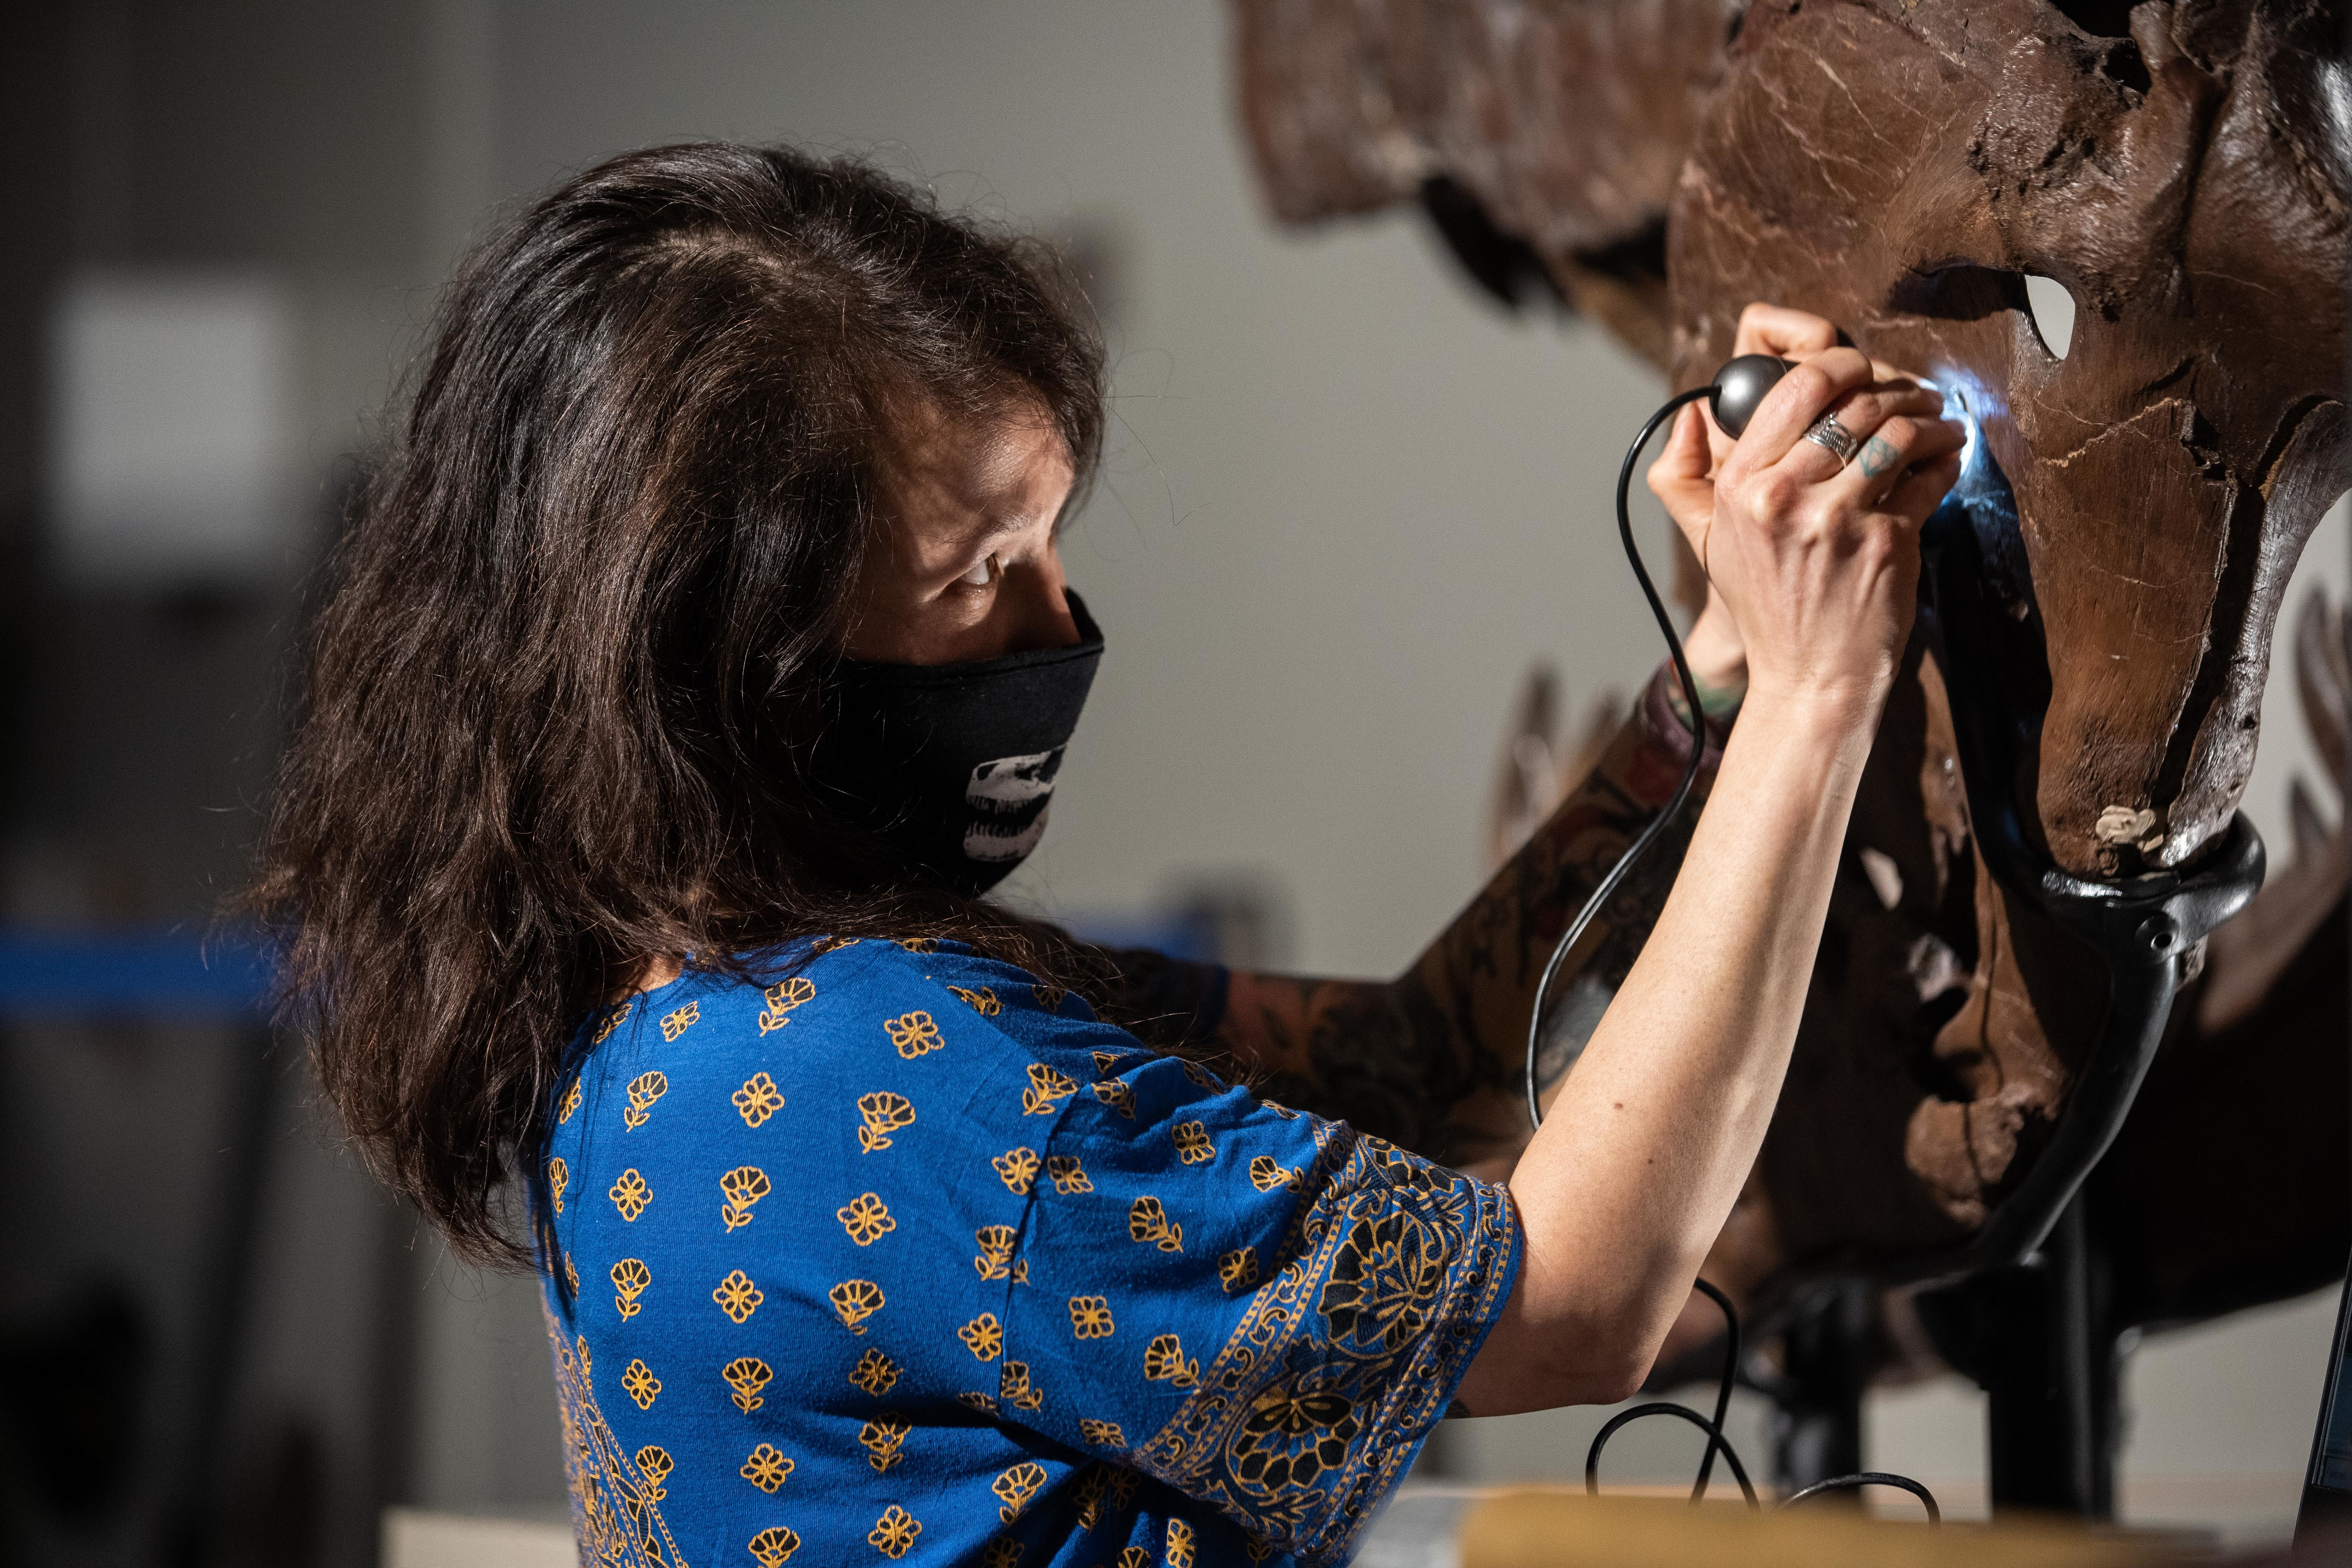 Jingmai O'Connor, the associate curator of fossil reptiles at the Field Museum, examines holes in Sue's jaw using a specialized handheld microscope Wednesday.